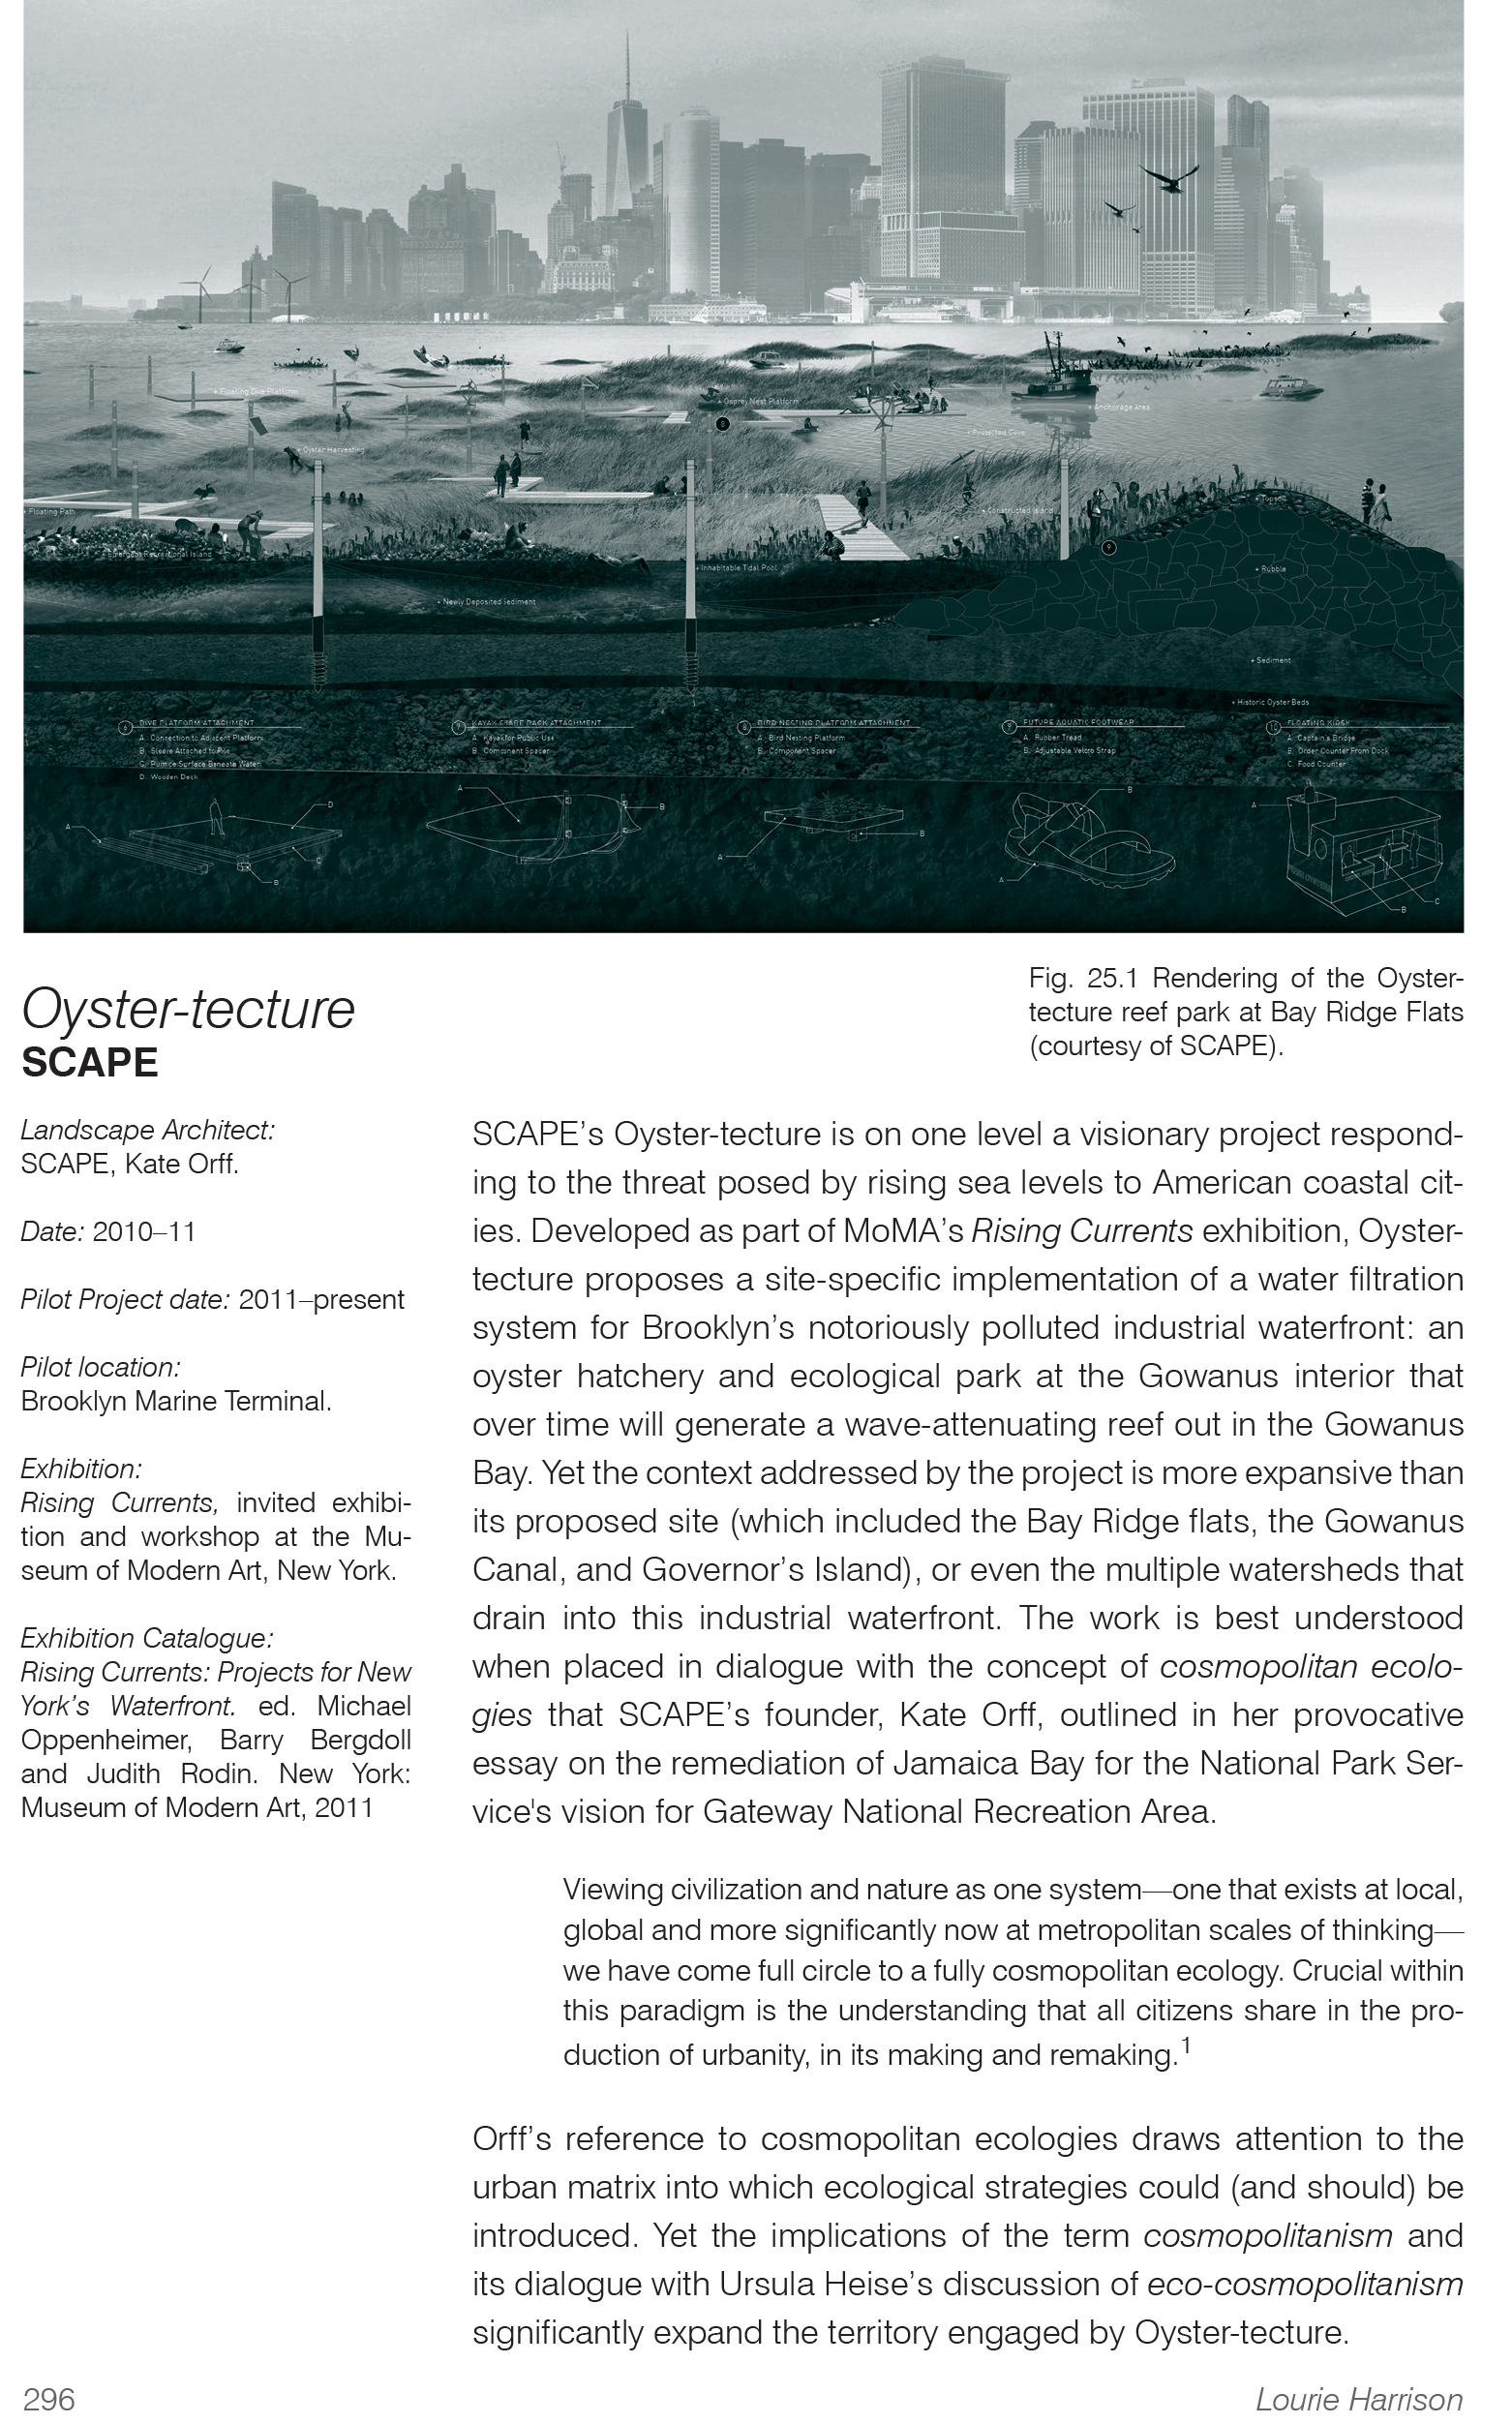 3Harrison Architectural Theories of the Environment Posthuman Territory 11 2012small-307.jpg